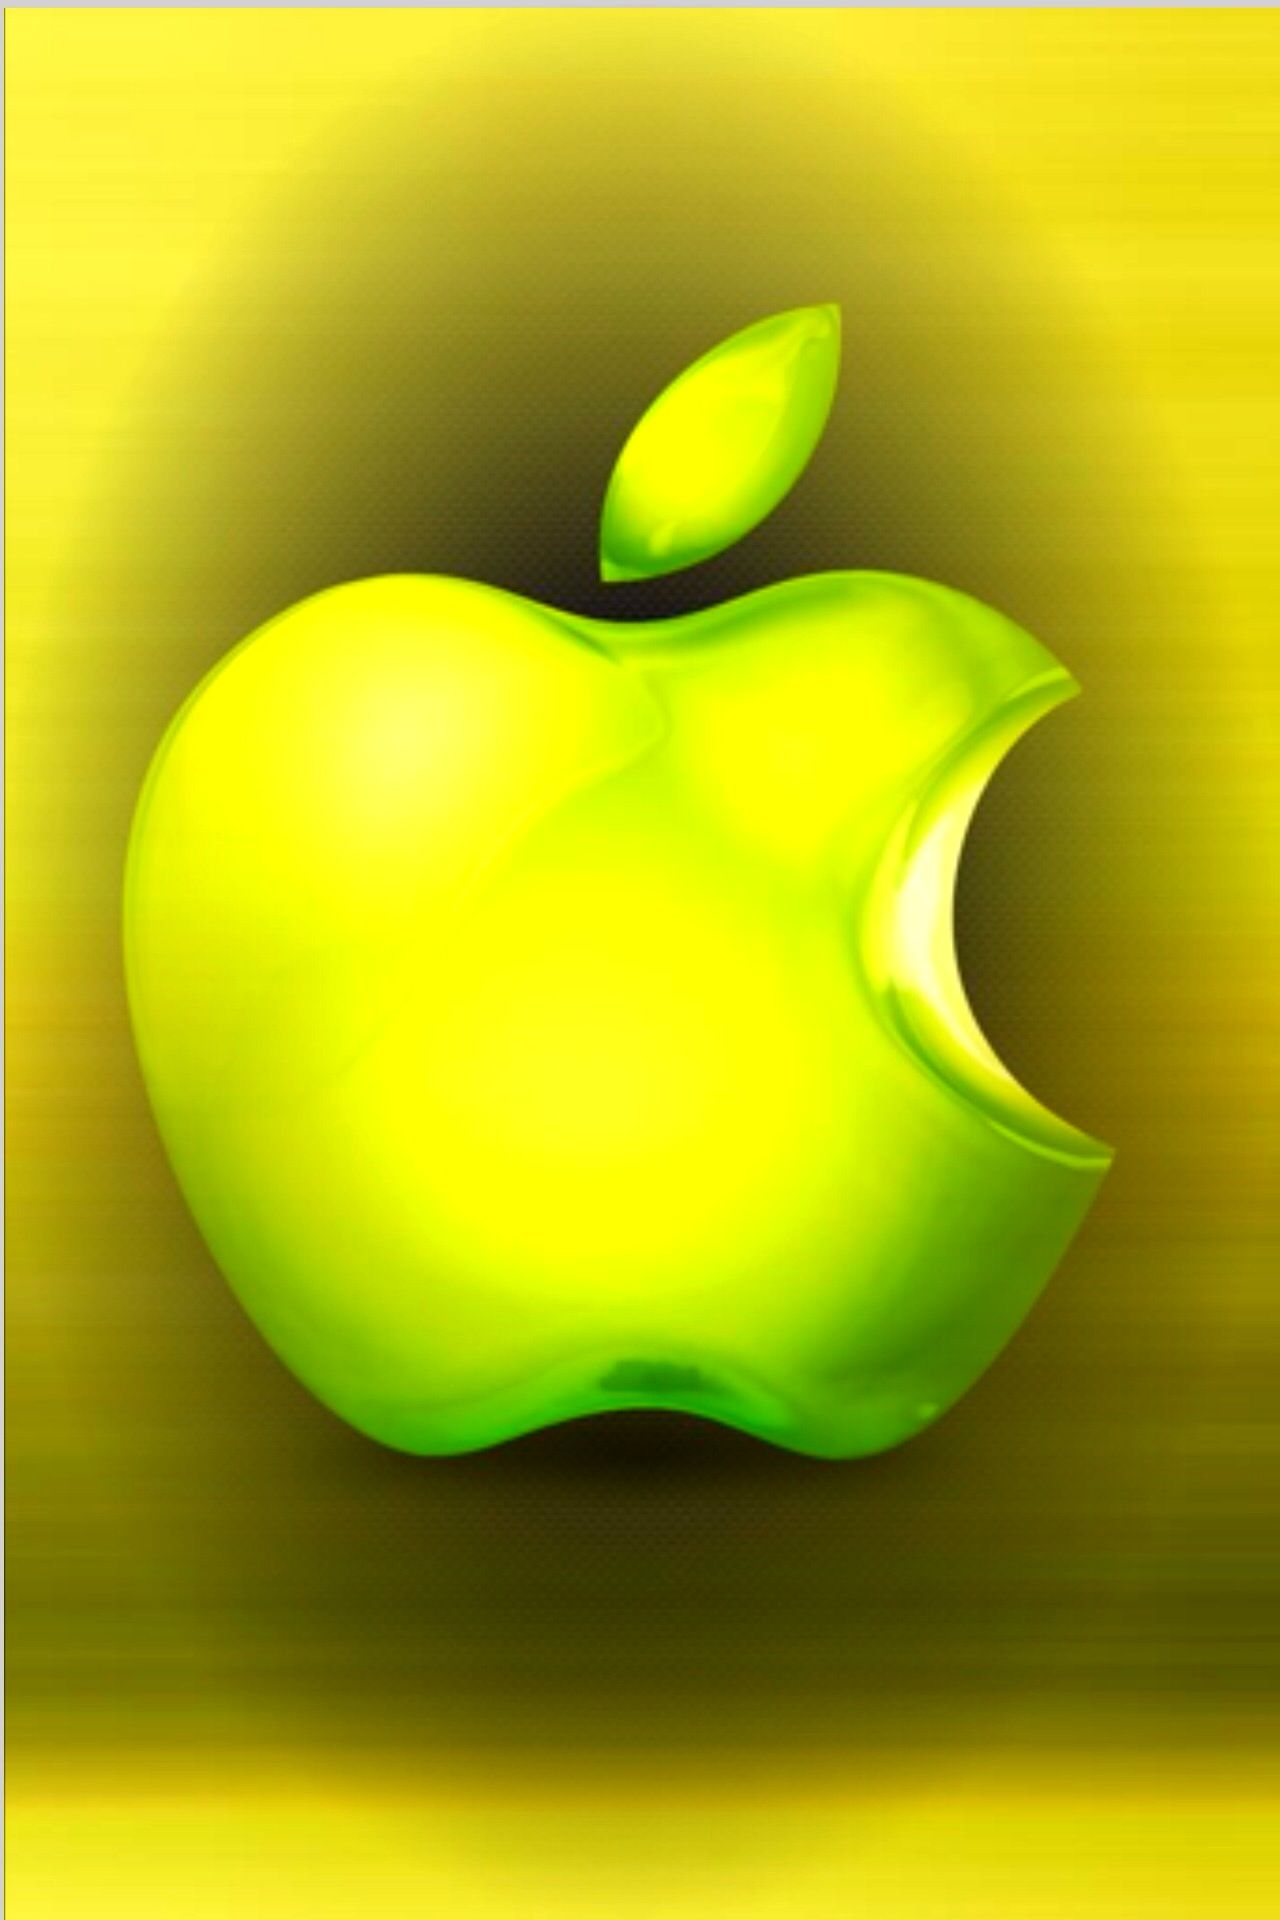 bright apple logo Bing images Iphone achtergrond